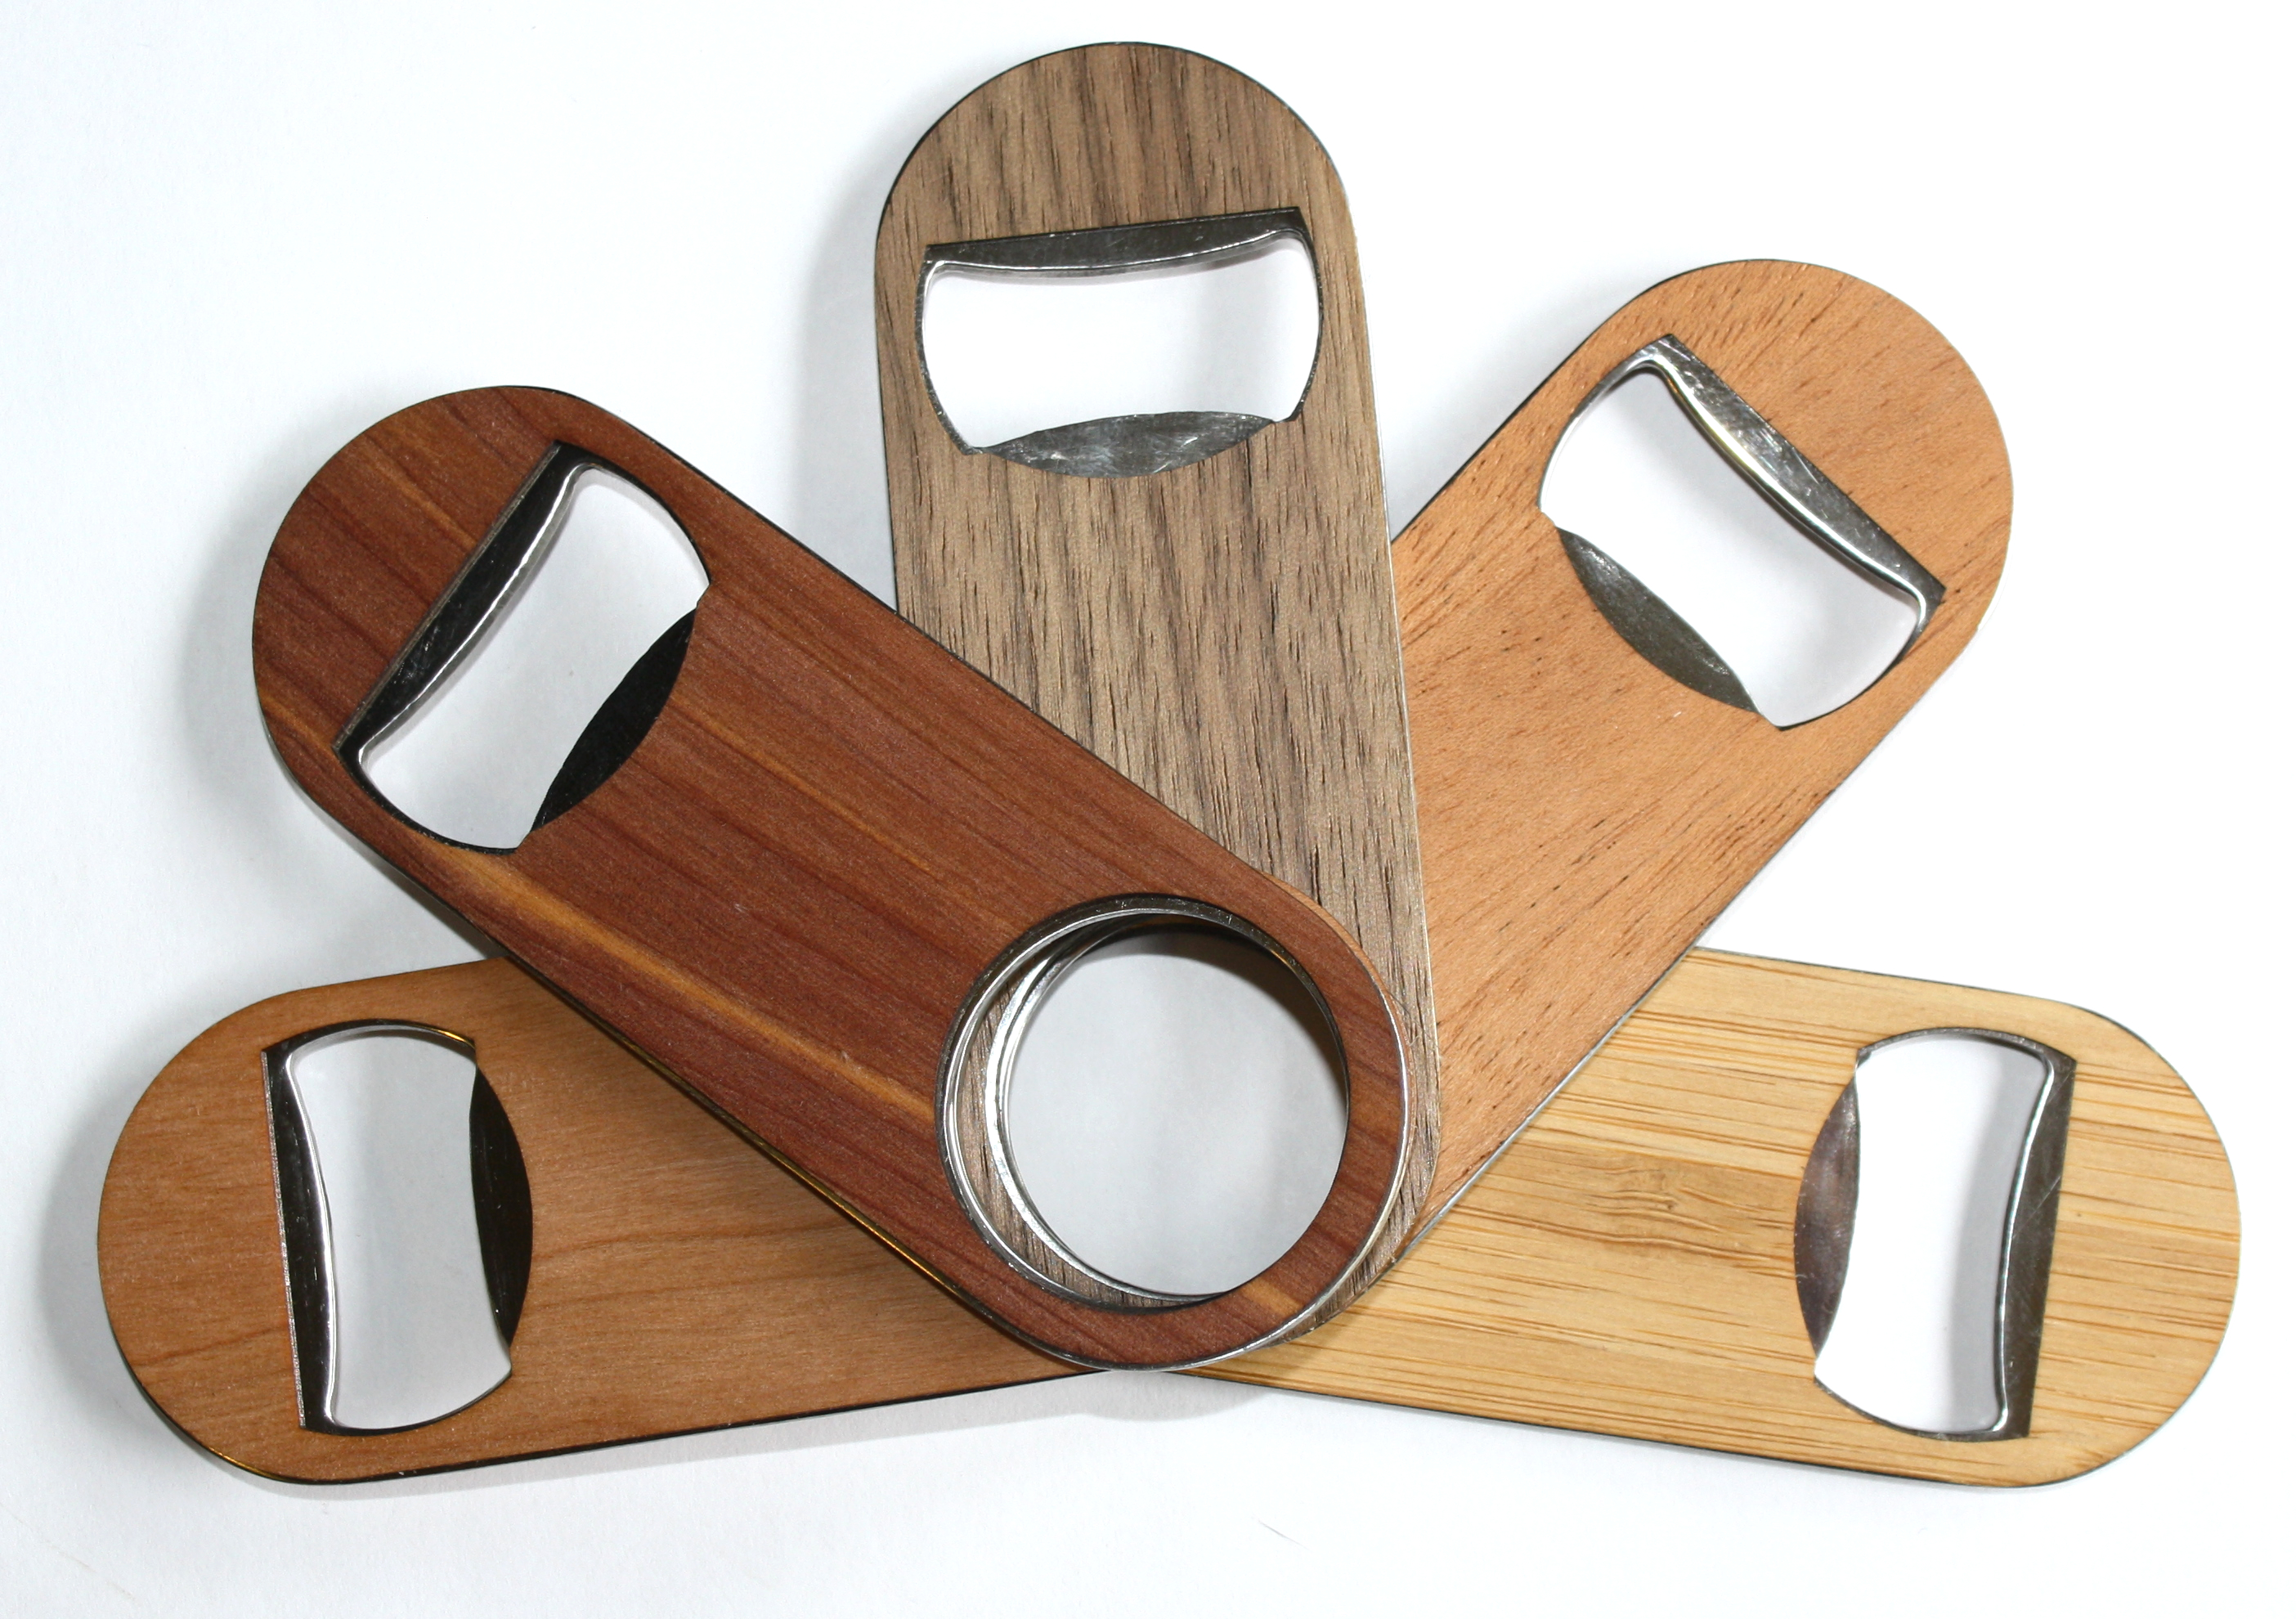 5 beautiful wood species for wooden promotional products